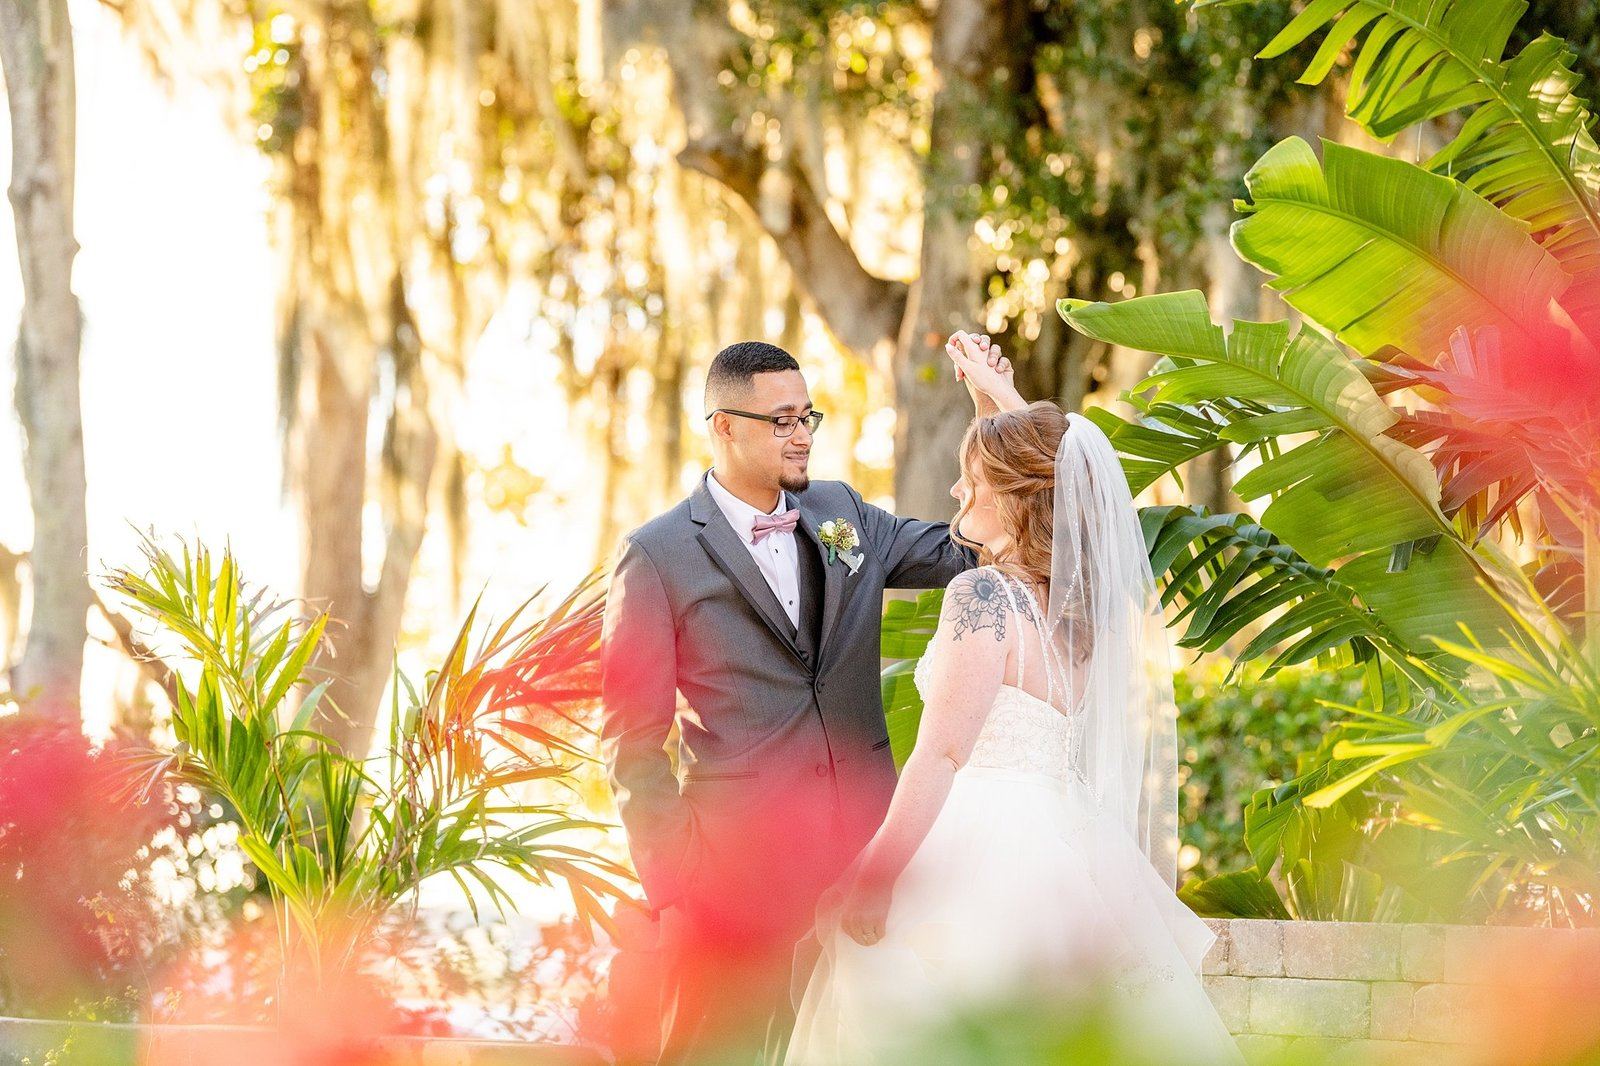 Light and Airy Wedding Photographer in Orlando